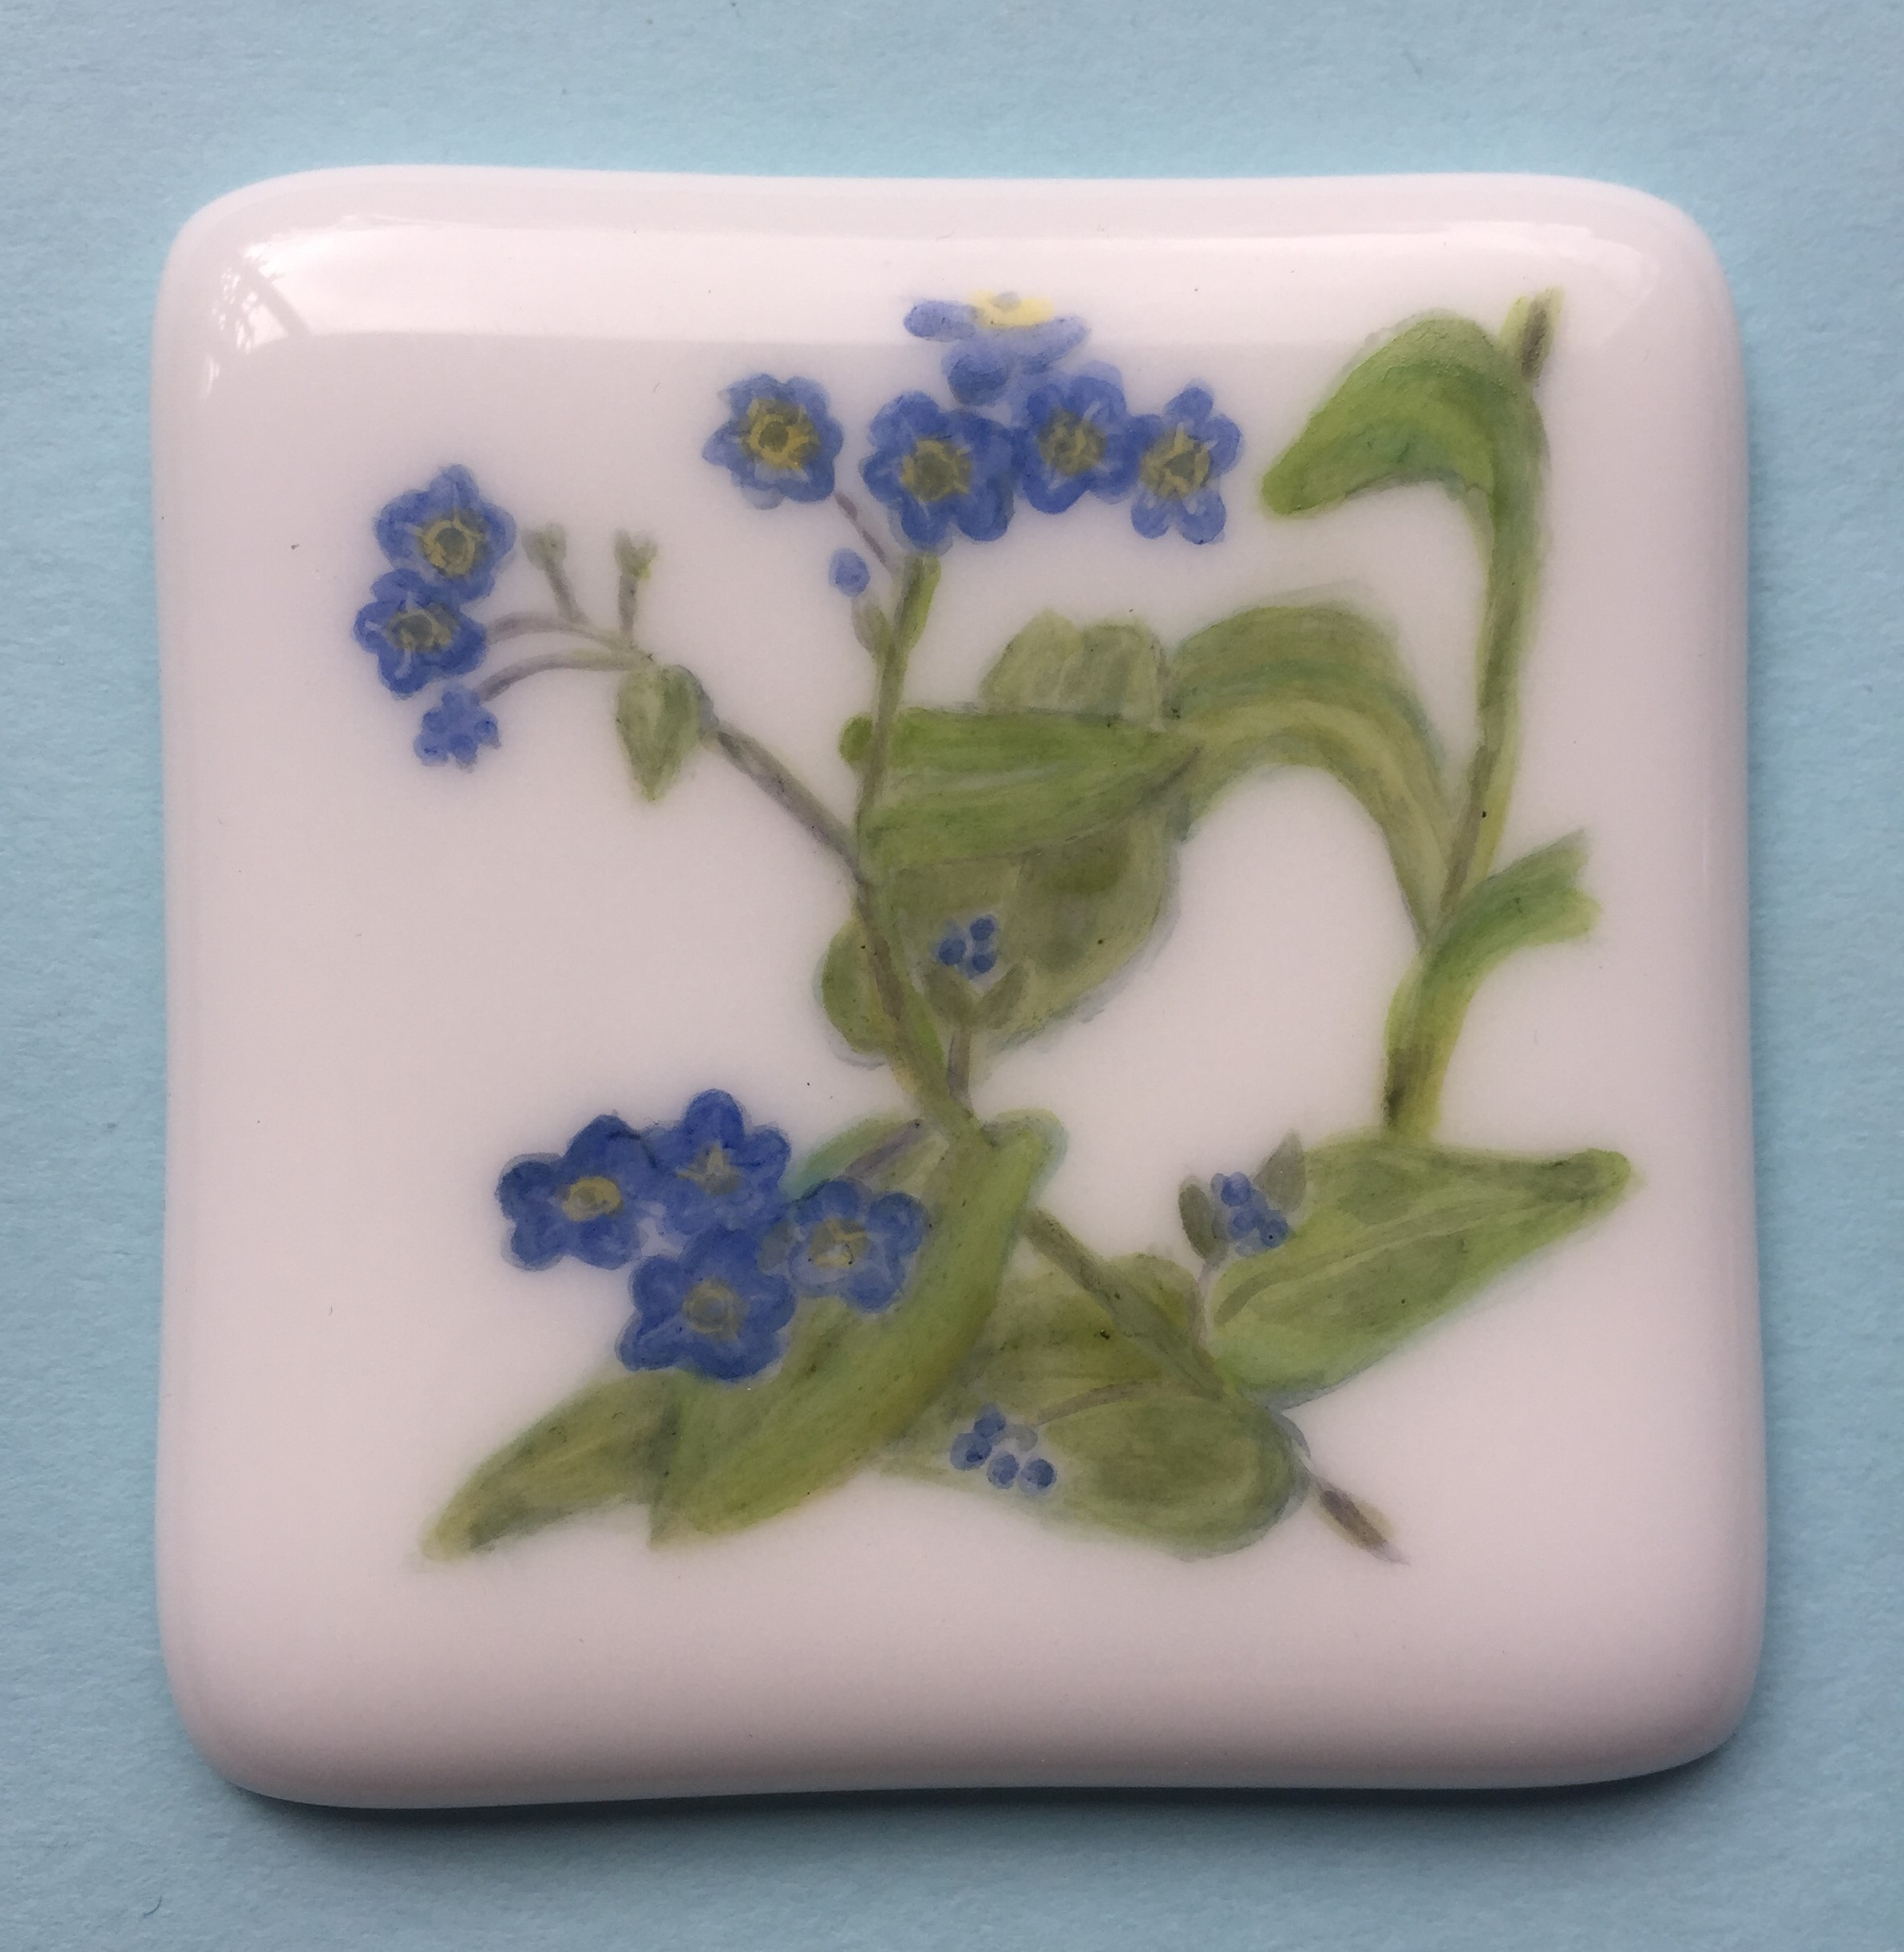 Flower study: Forget-me-nots painted in glass enamels and fired onto plain white glass